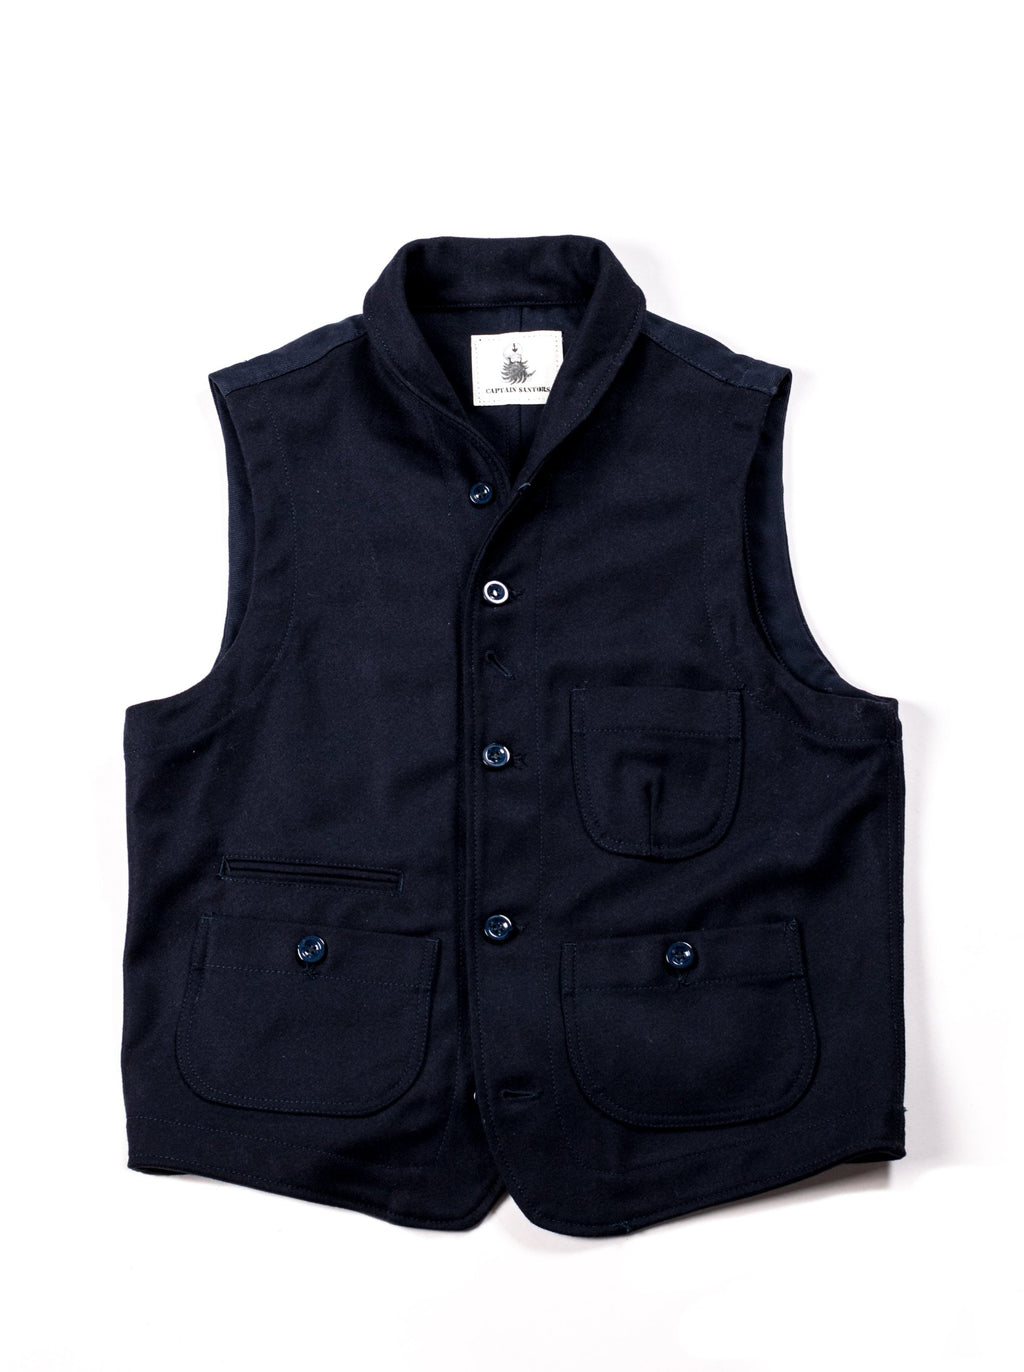 Captain Santors 7701 CS 317 Vest - Atacama Clothing